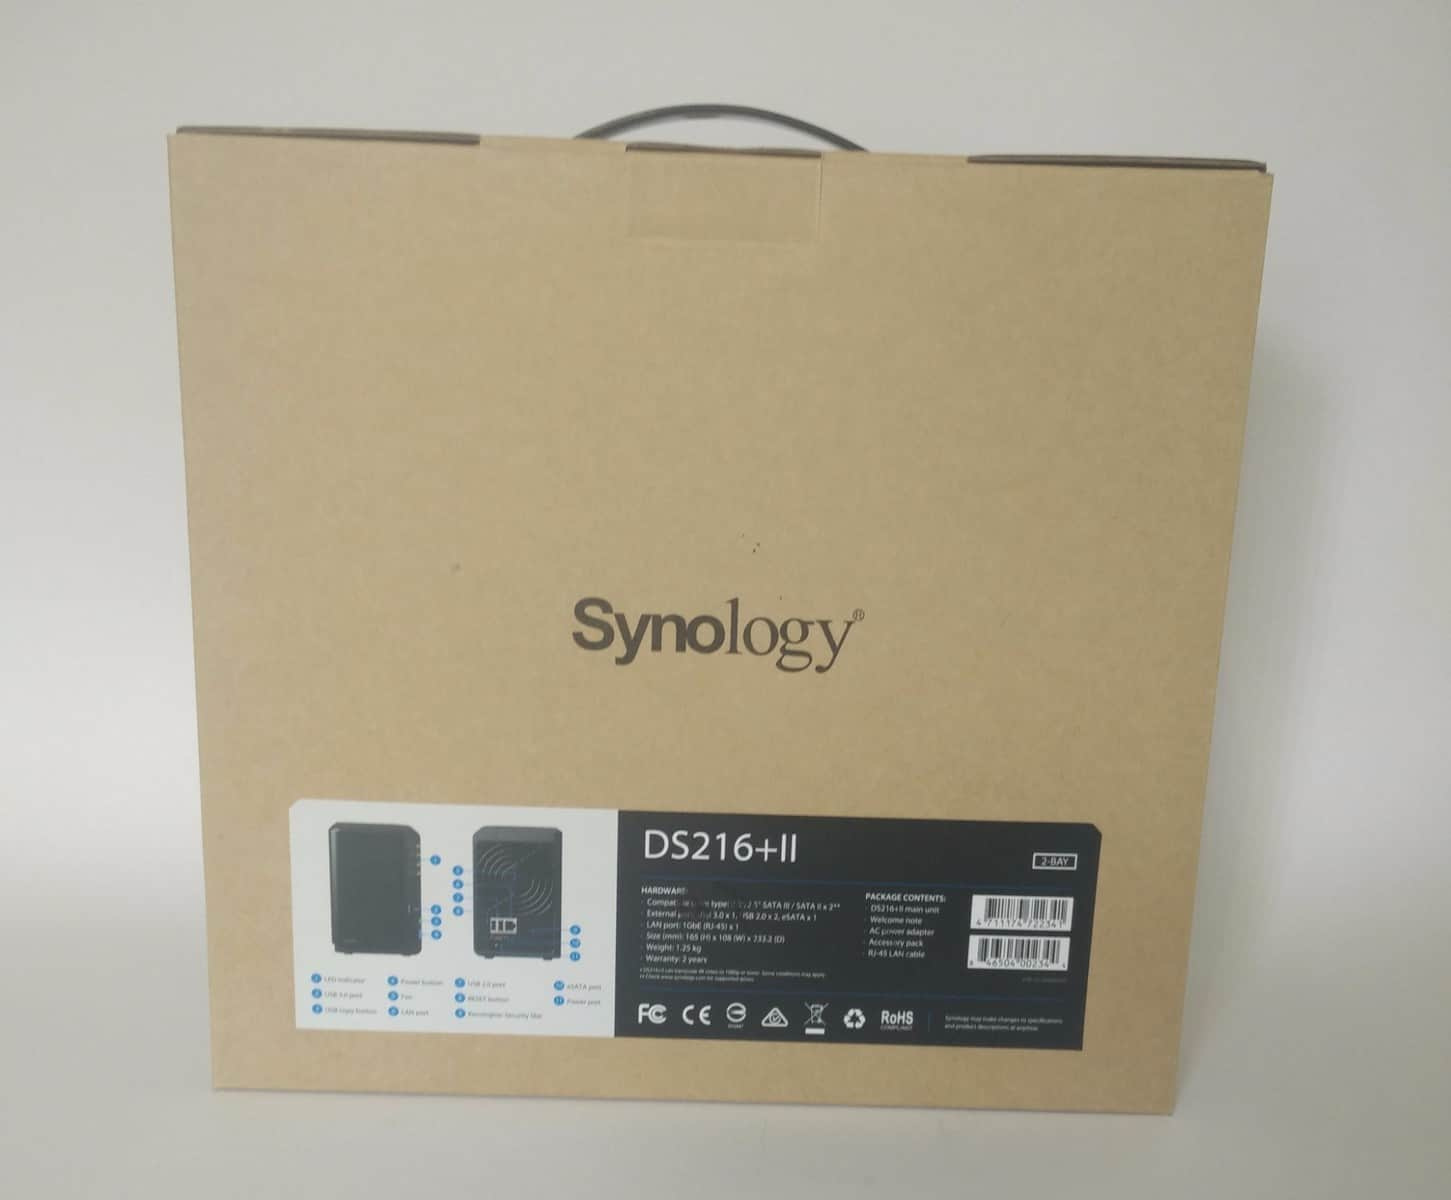 Synology-DS216II-Photo-03 Synology DS216+II 2 Bay NAS Review